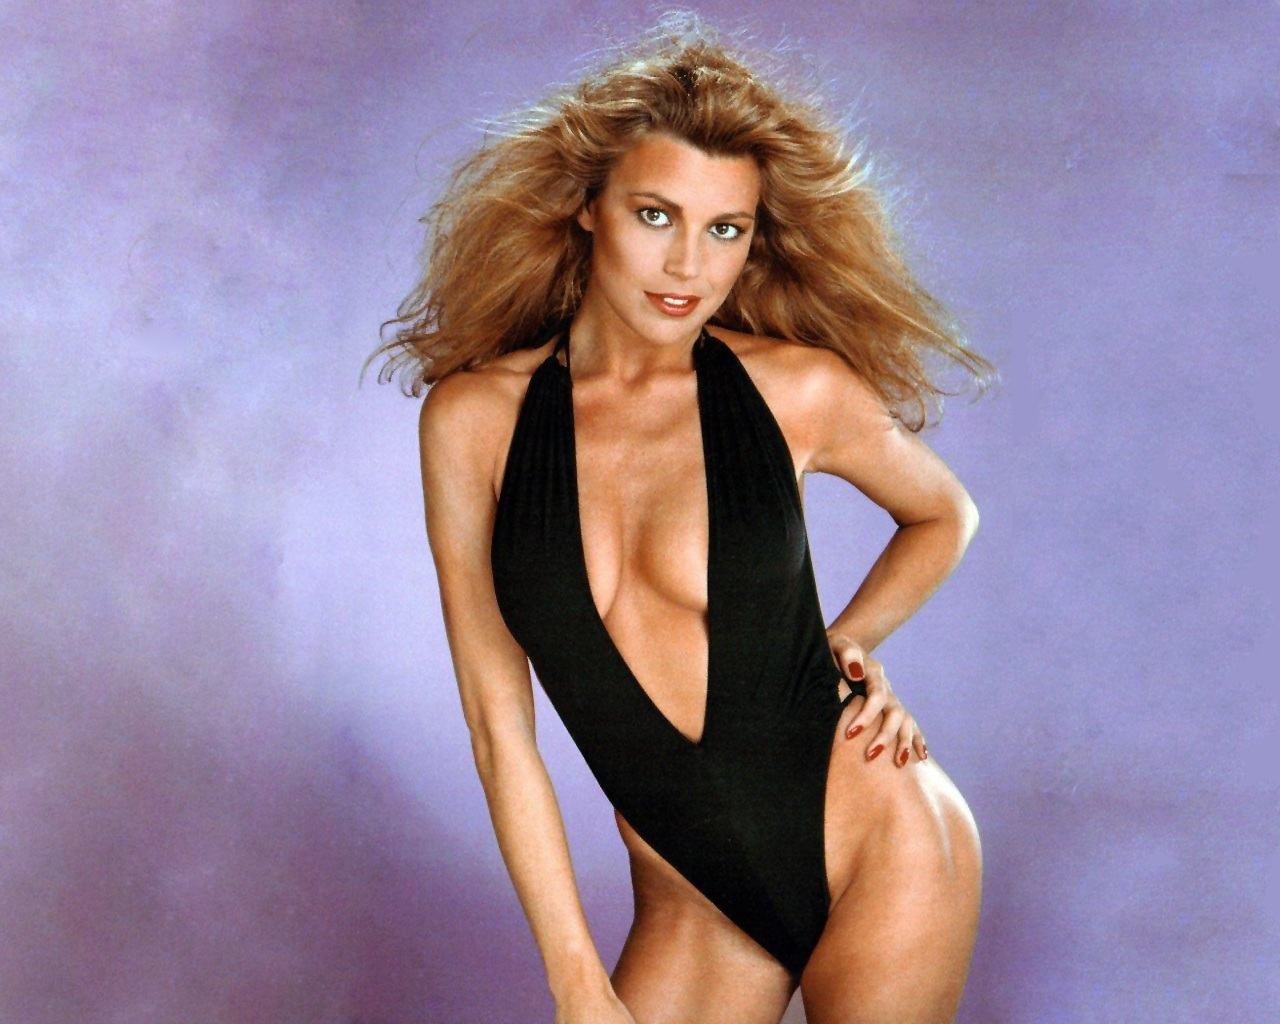 Vanna white sexy pictures